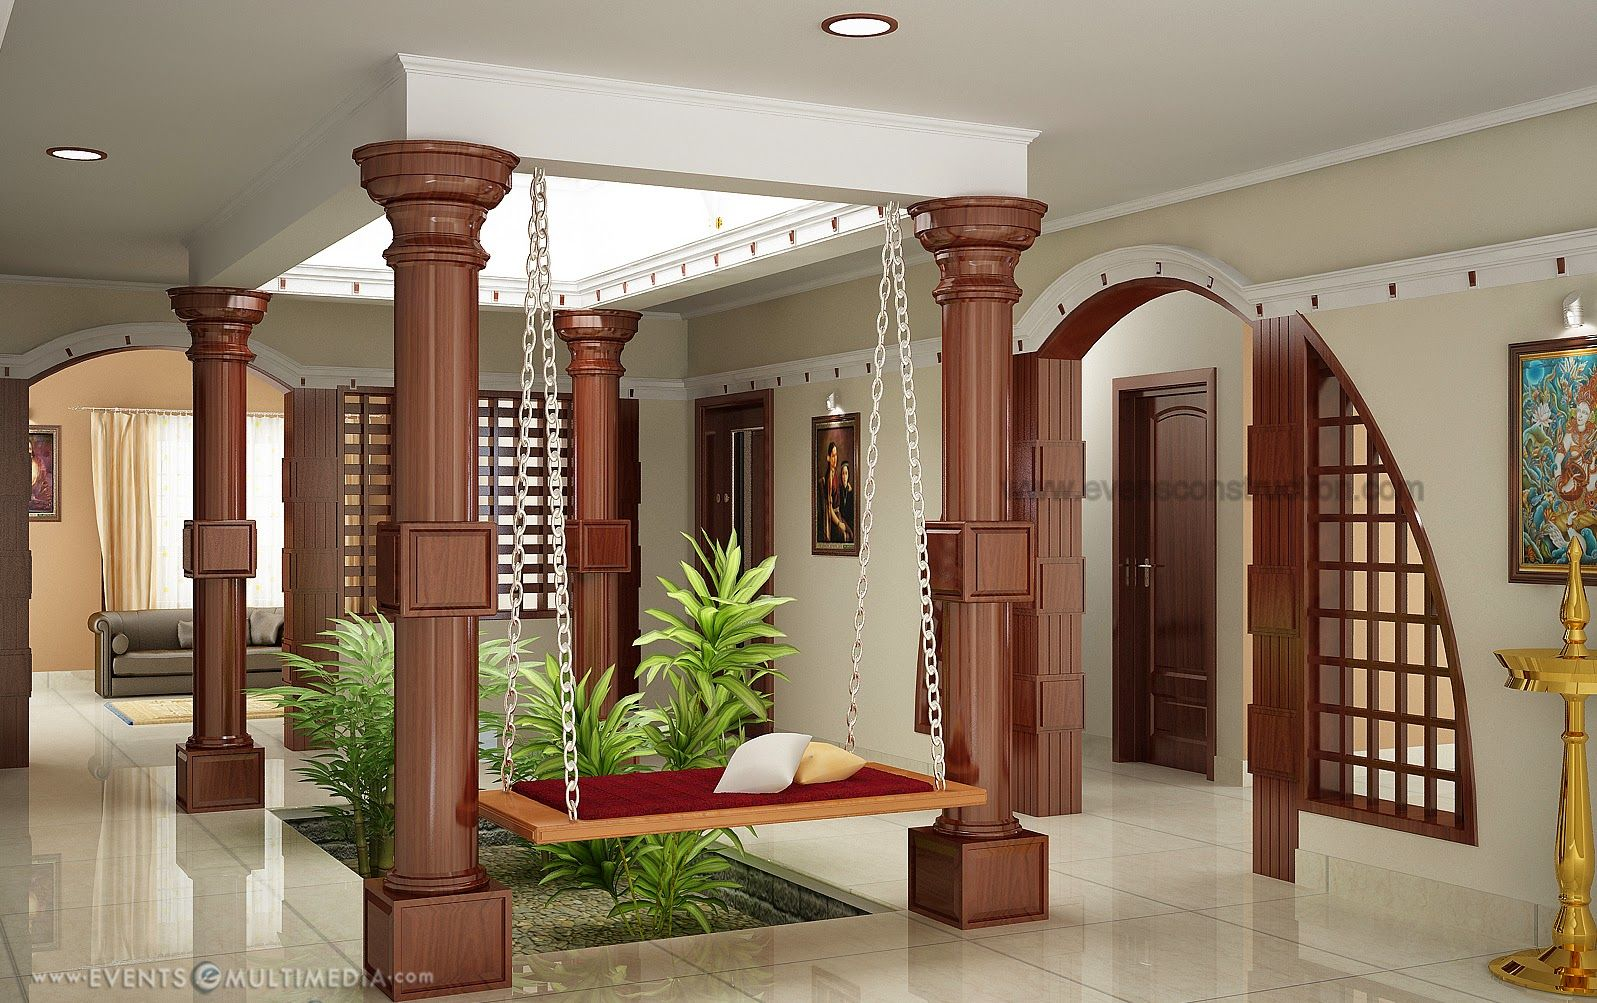 Interior design kerala google search inside and outside pinterest kerala google search - Home interior design indian style ...